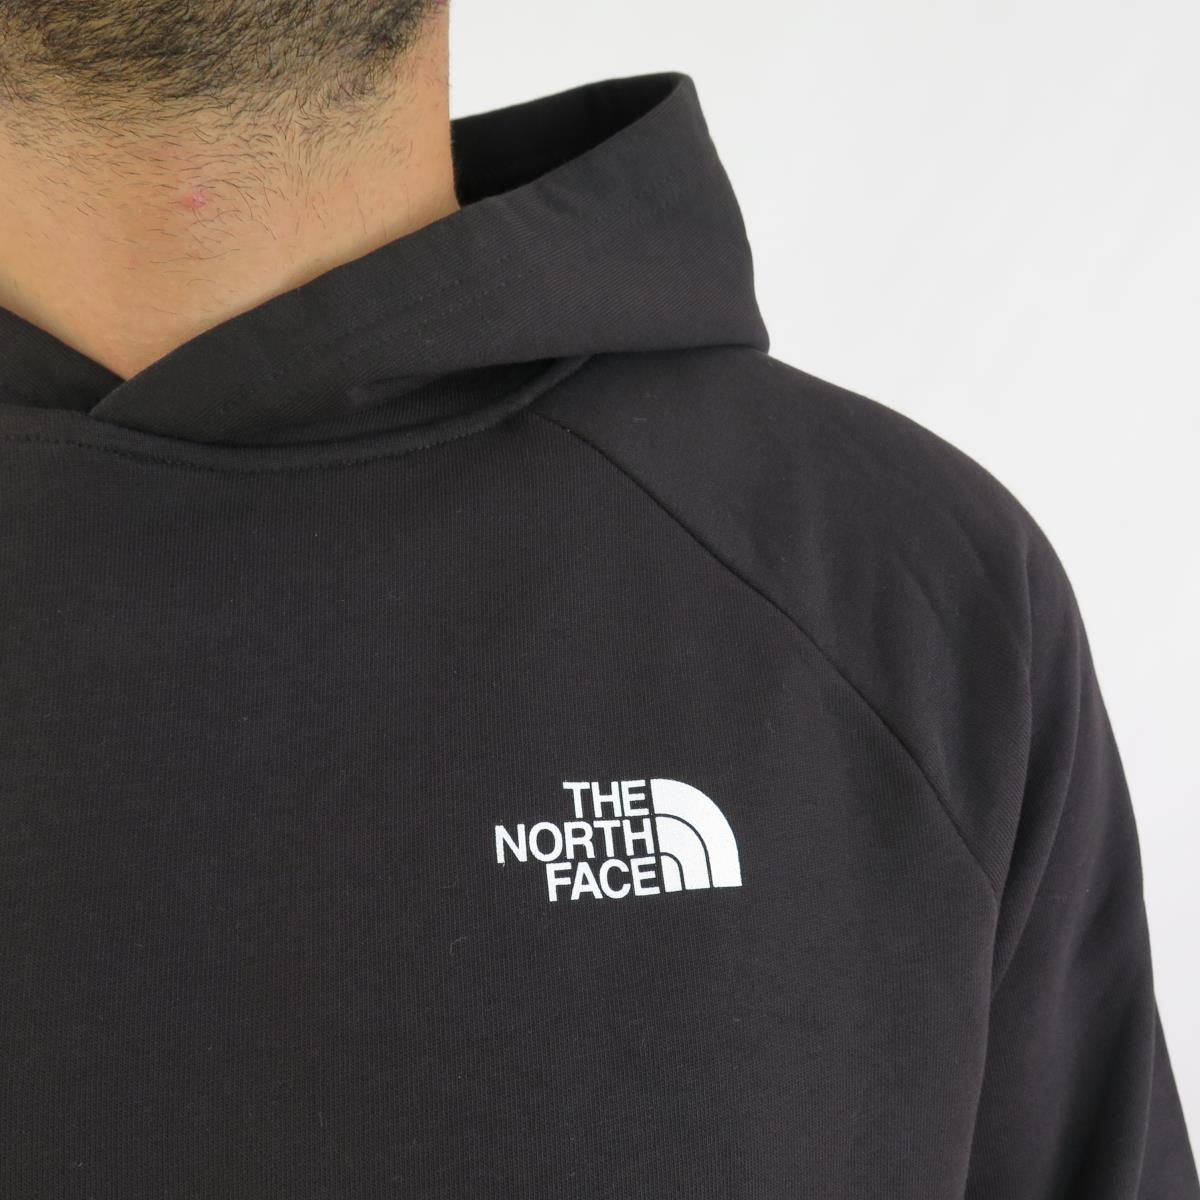 The North Face Felpa Uomo Raglan Red Box Black  07f73e74b5c9